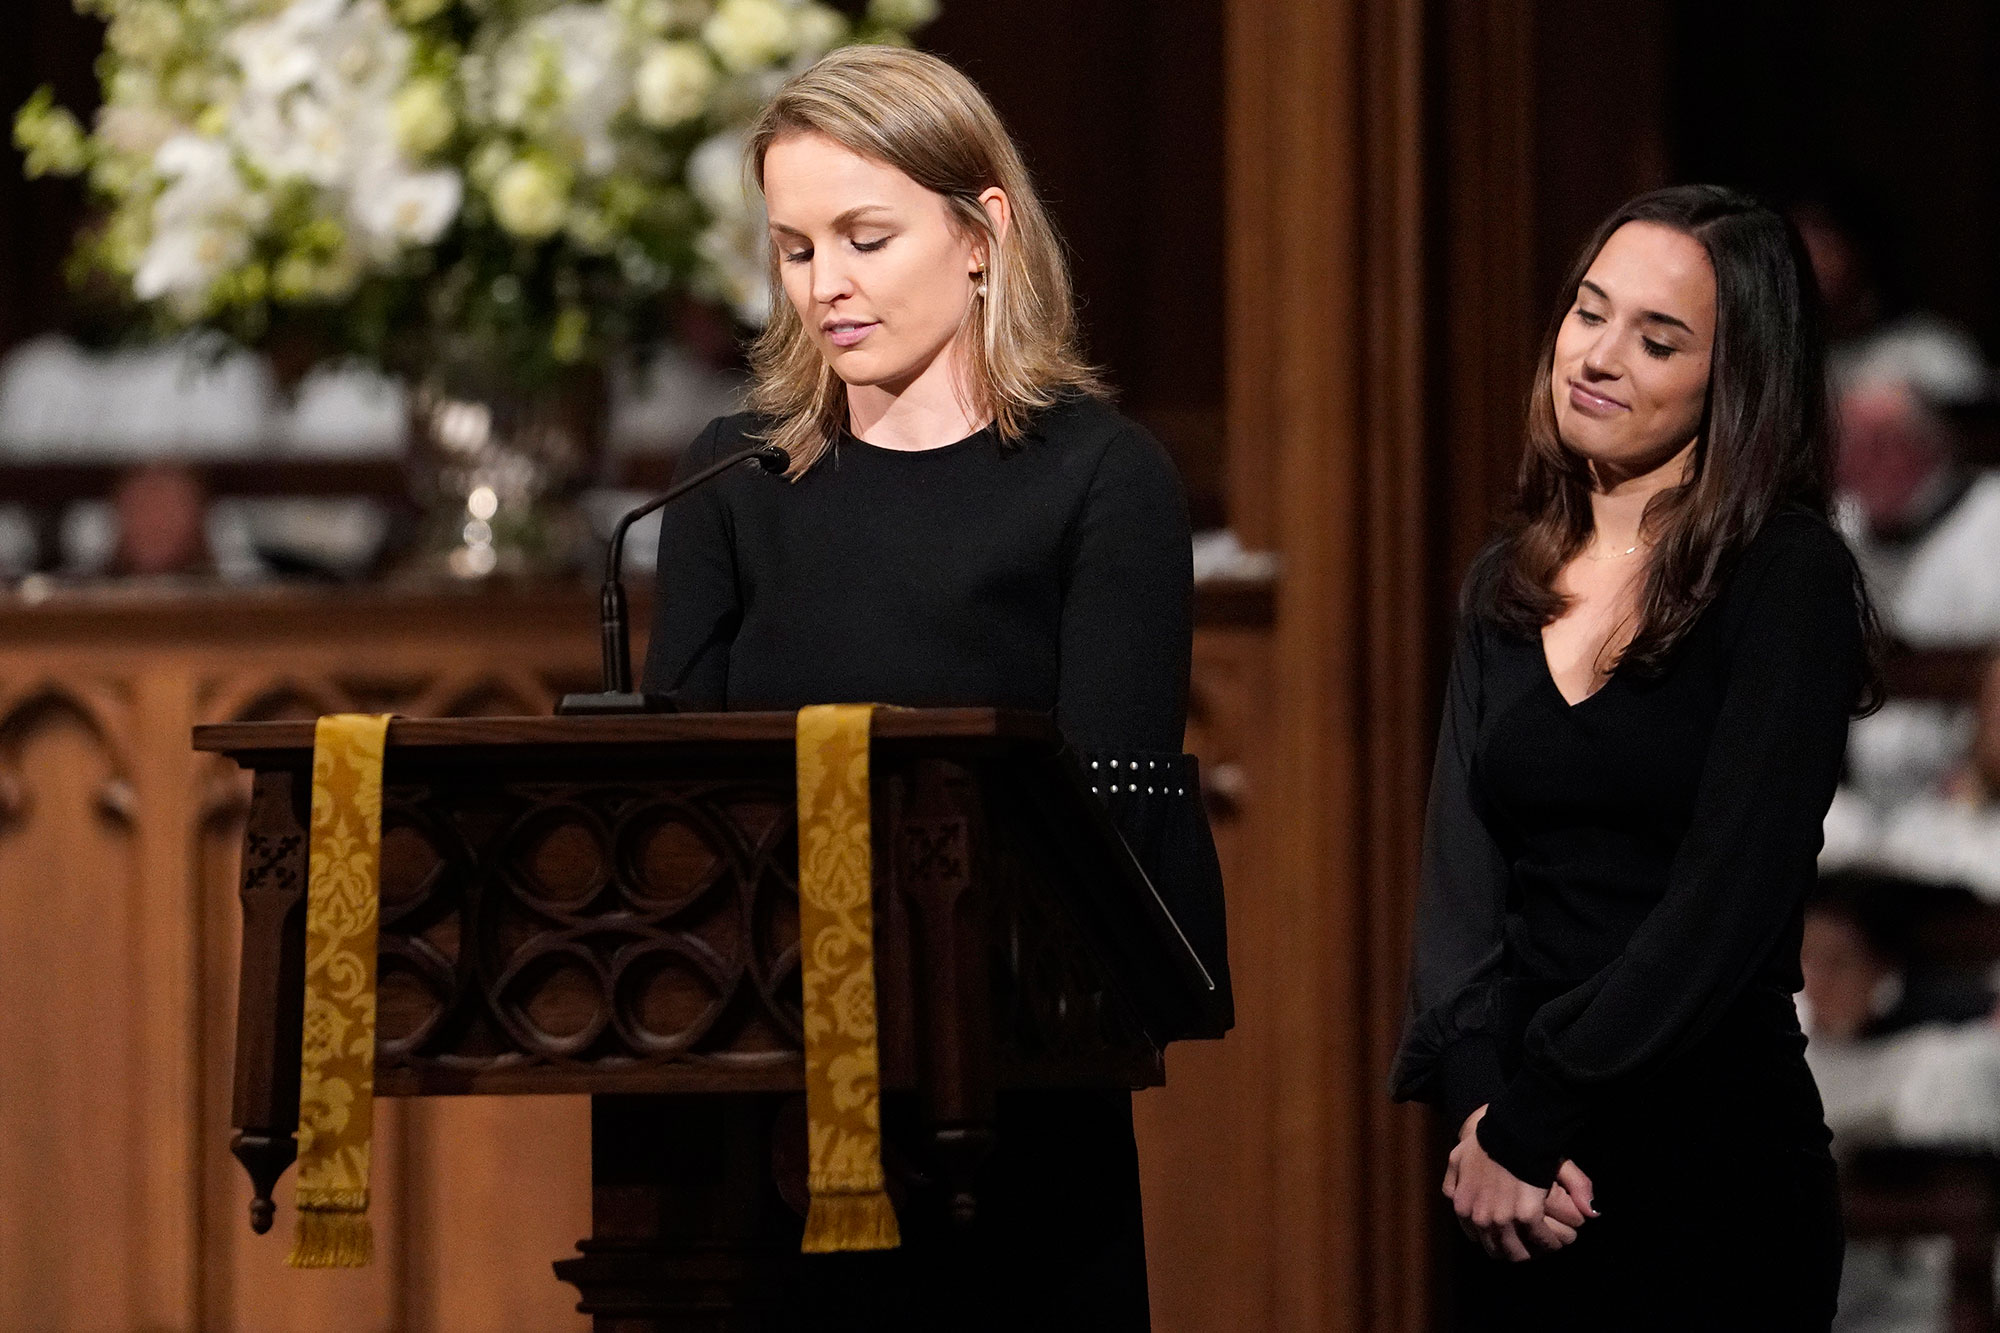 <div class='meta'><div class='origin-logo' data-origin='none'></div><span class='caption-text' data-credit='David J. Phillip, Pool/AP Photo'>Granddaughters Nancy Ellis LeBlond Sosa, left, and Georgia Grace Koch read scripture during a funeral service for former President George H.W. Bush.</span></div>